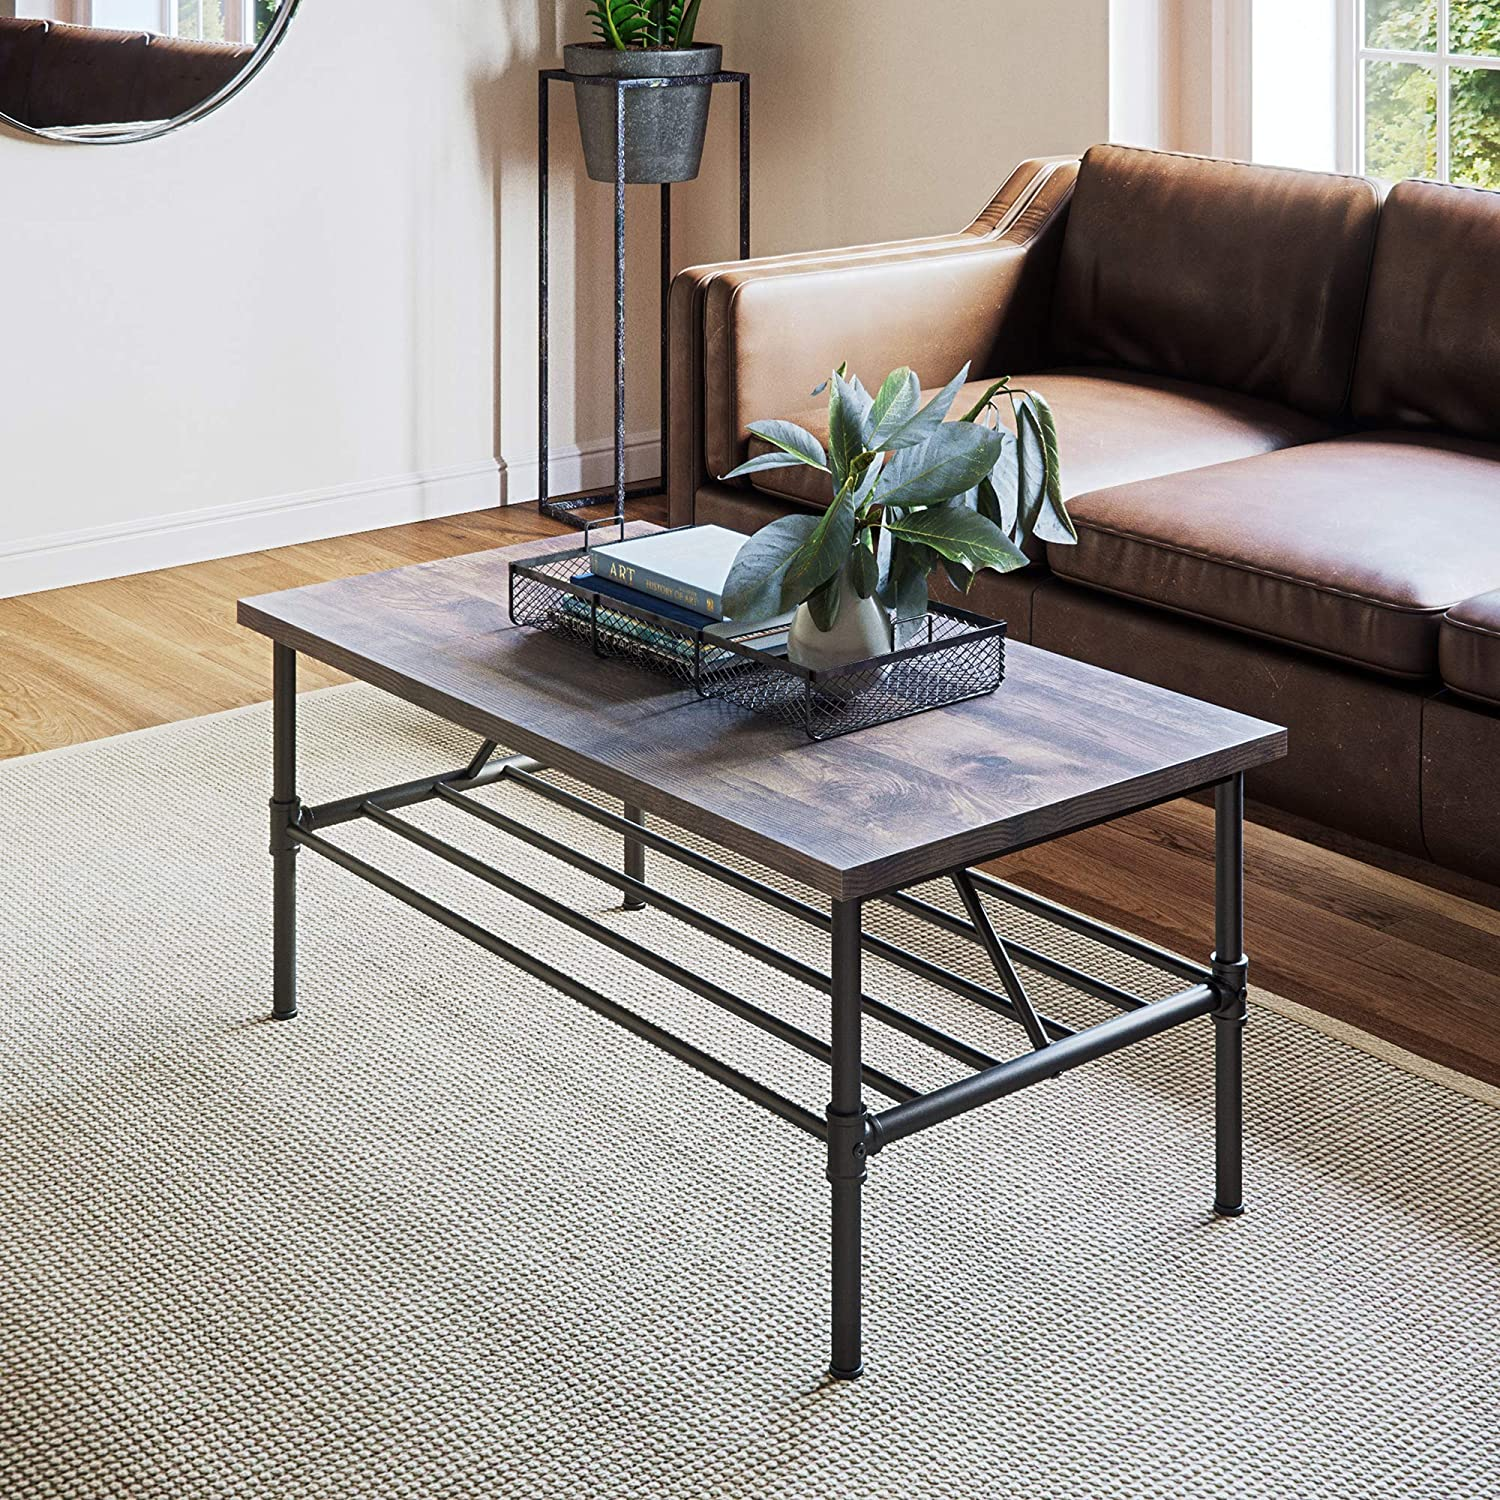 Amazon com nathan james 31301 maxx industrial pipe metal and rustic wood coffee table 41 gray black kitchen islands carts